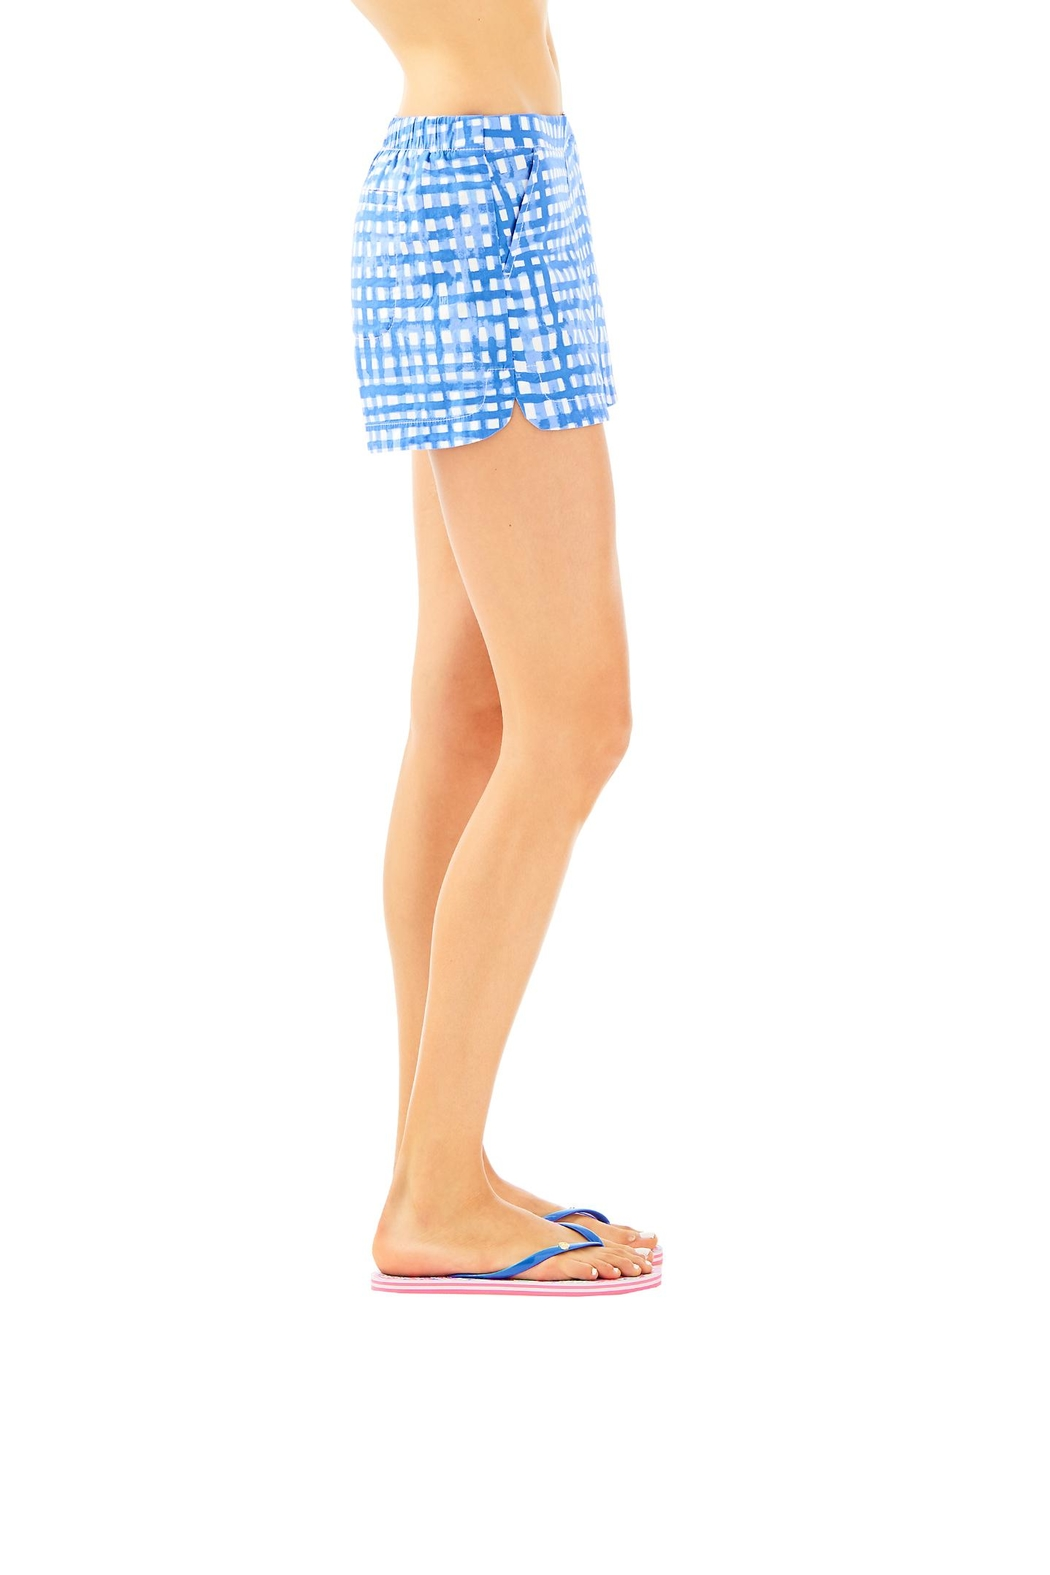 Lilly Pulitzer Ocean View Boardshort - Side Cropped Image